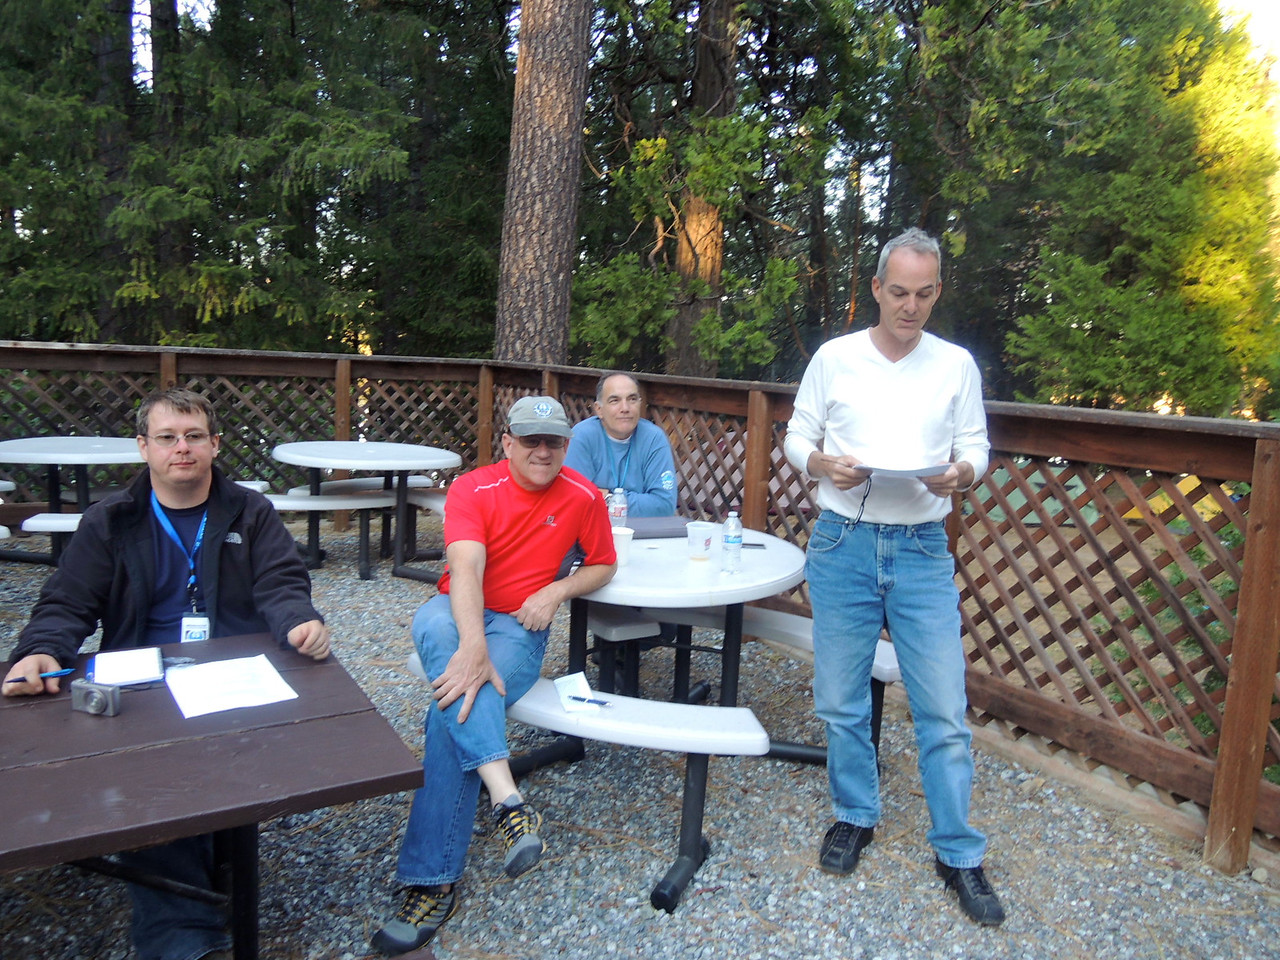 Vice President, Dan Rowe. Historian, Don Alexson, Safety/Tech, Buddy Scauzzo listen attentively to Trasurer, John Vashon.